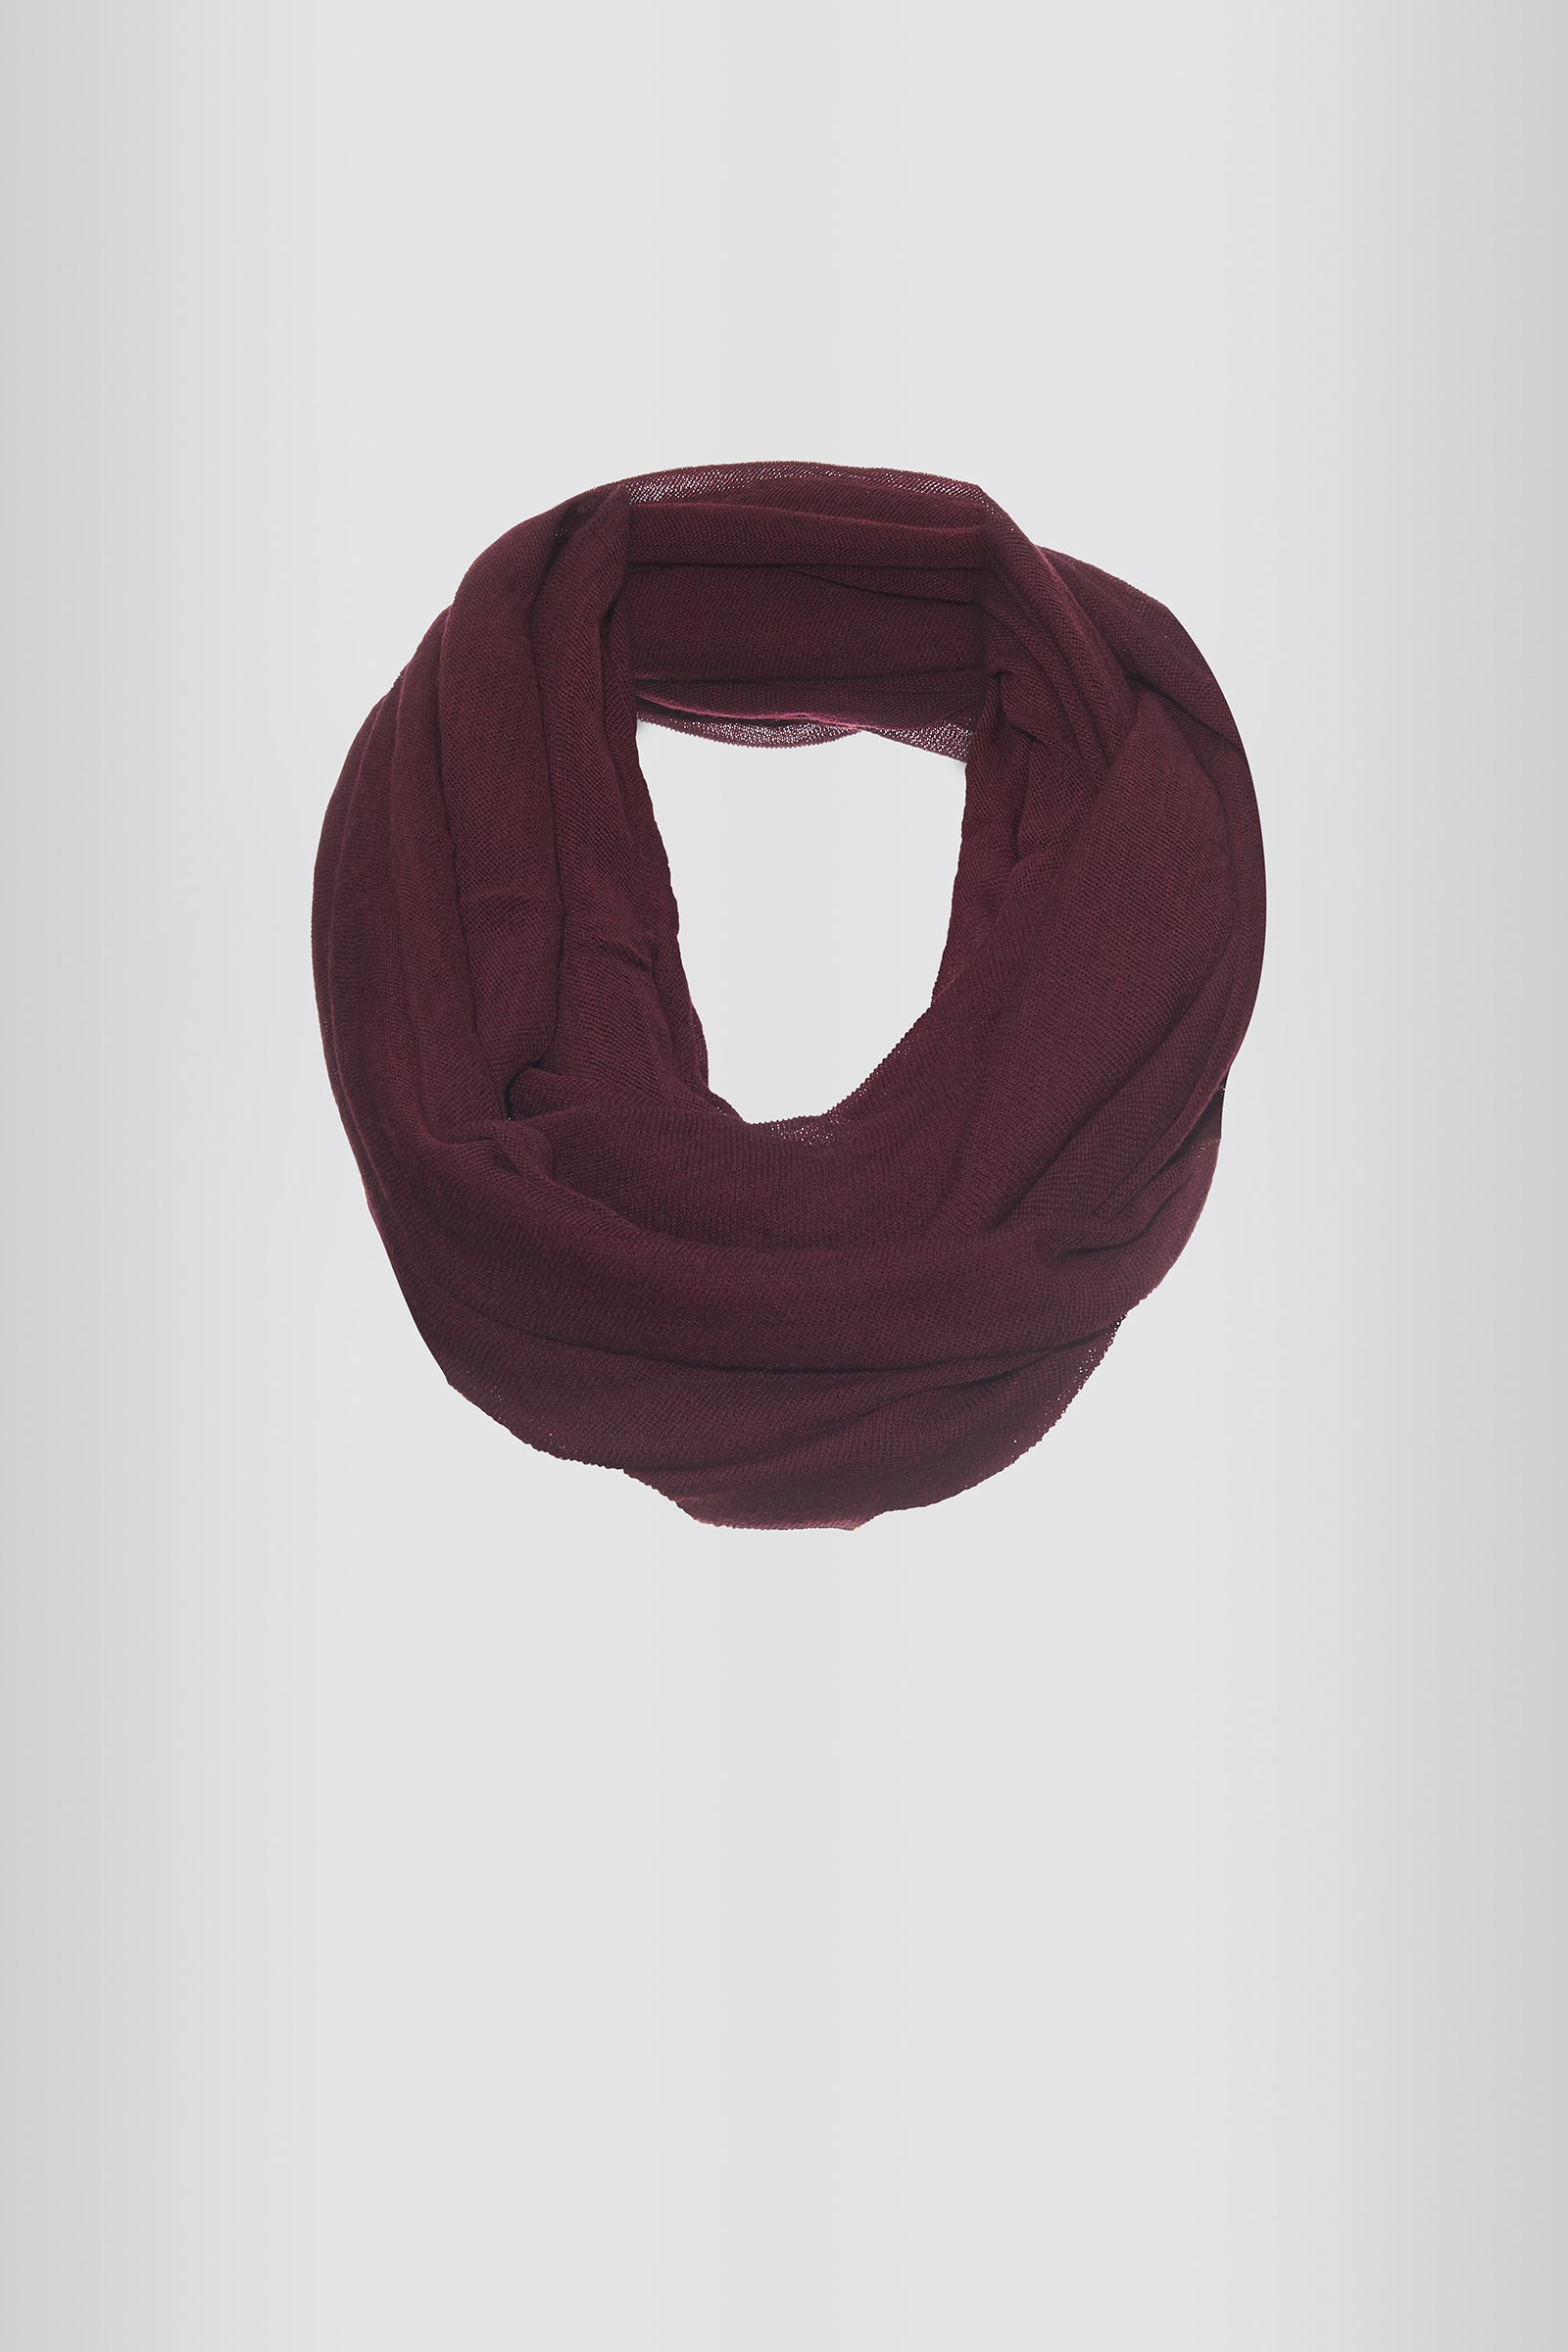 Kal Rieman Infinity Circle Scarf in Wine